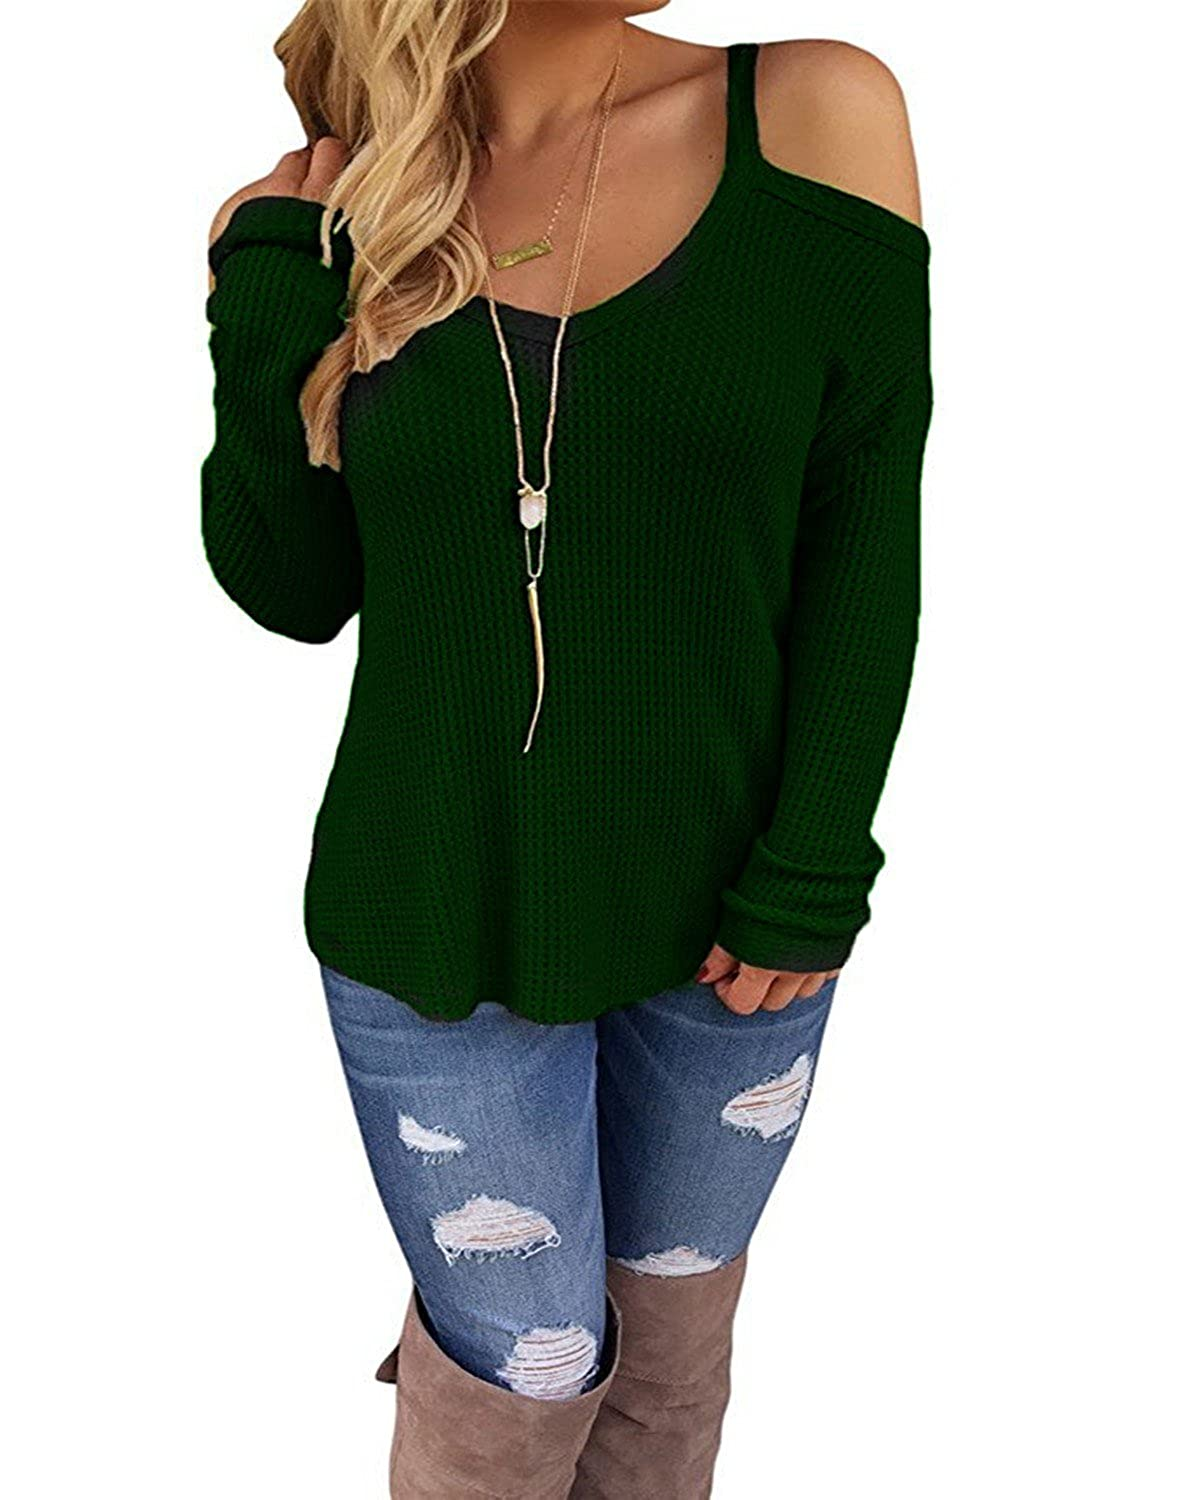 d7817318fd90b CNFIO Women s Cold Open Shoulder Tops Plain Shirts V Neck Long Sleeve Tee  Knitted Loose Casual Blouses at Amazon Women s Clothing store